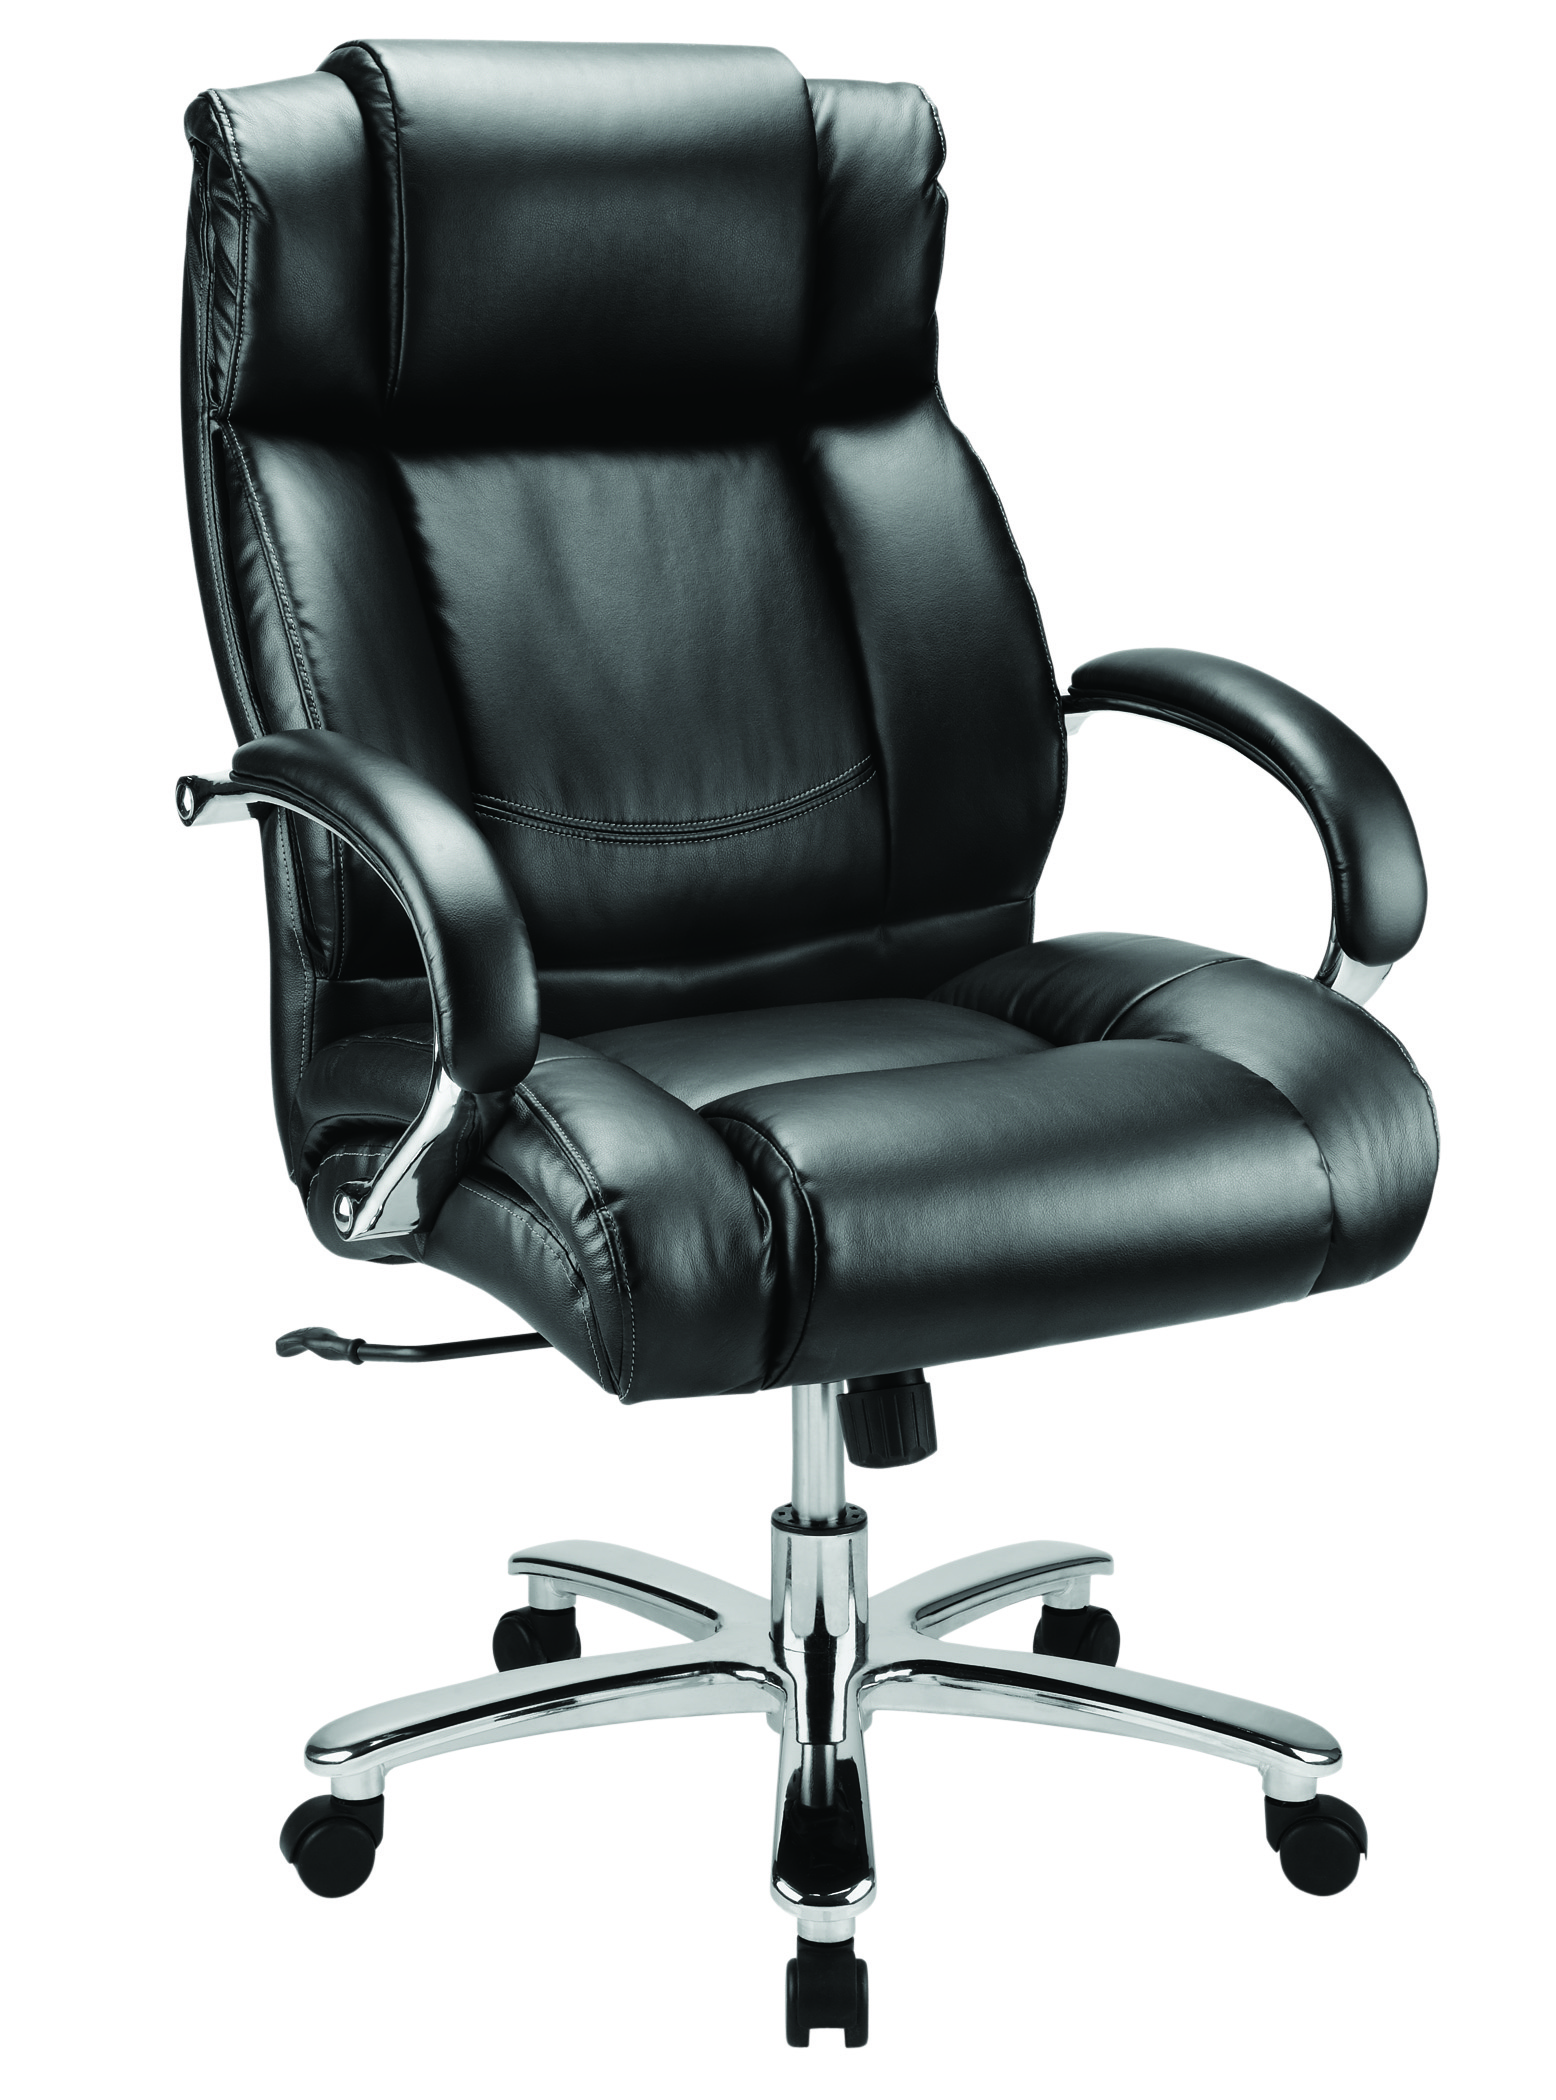 WorkPro® 15000 Big And Tall Bonded Leather High-Back Chair, Black/Silver